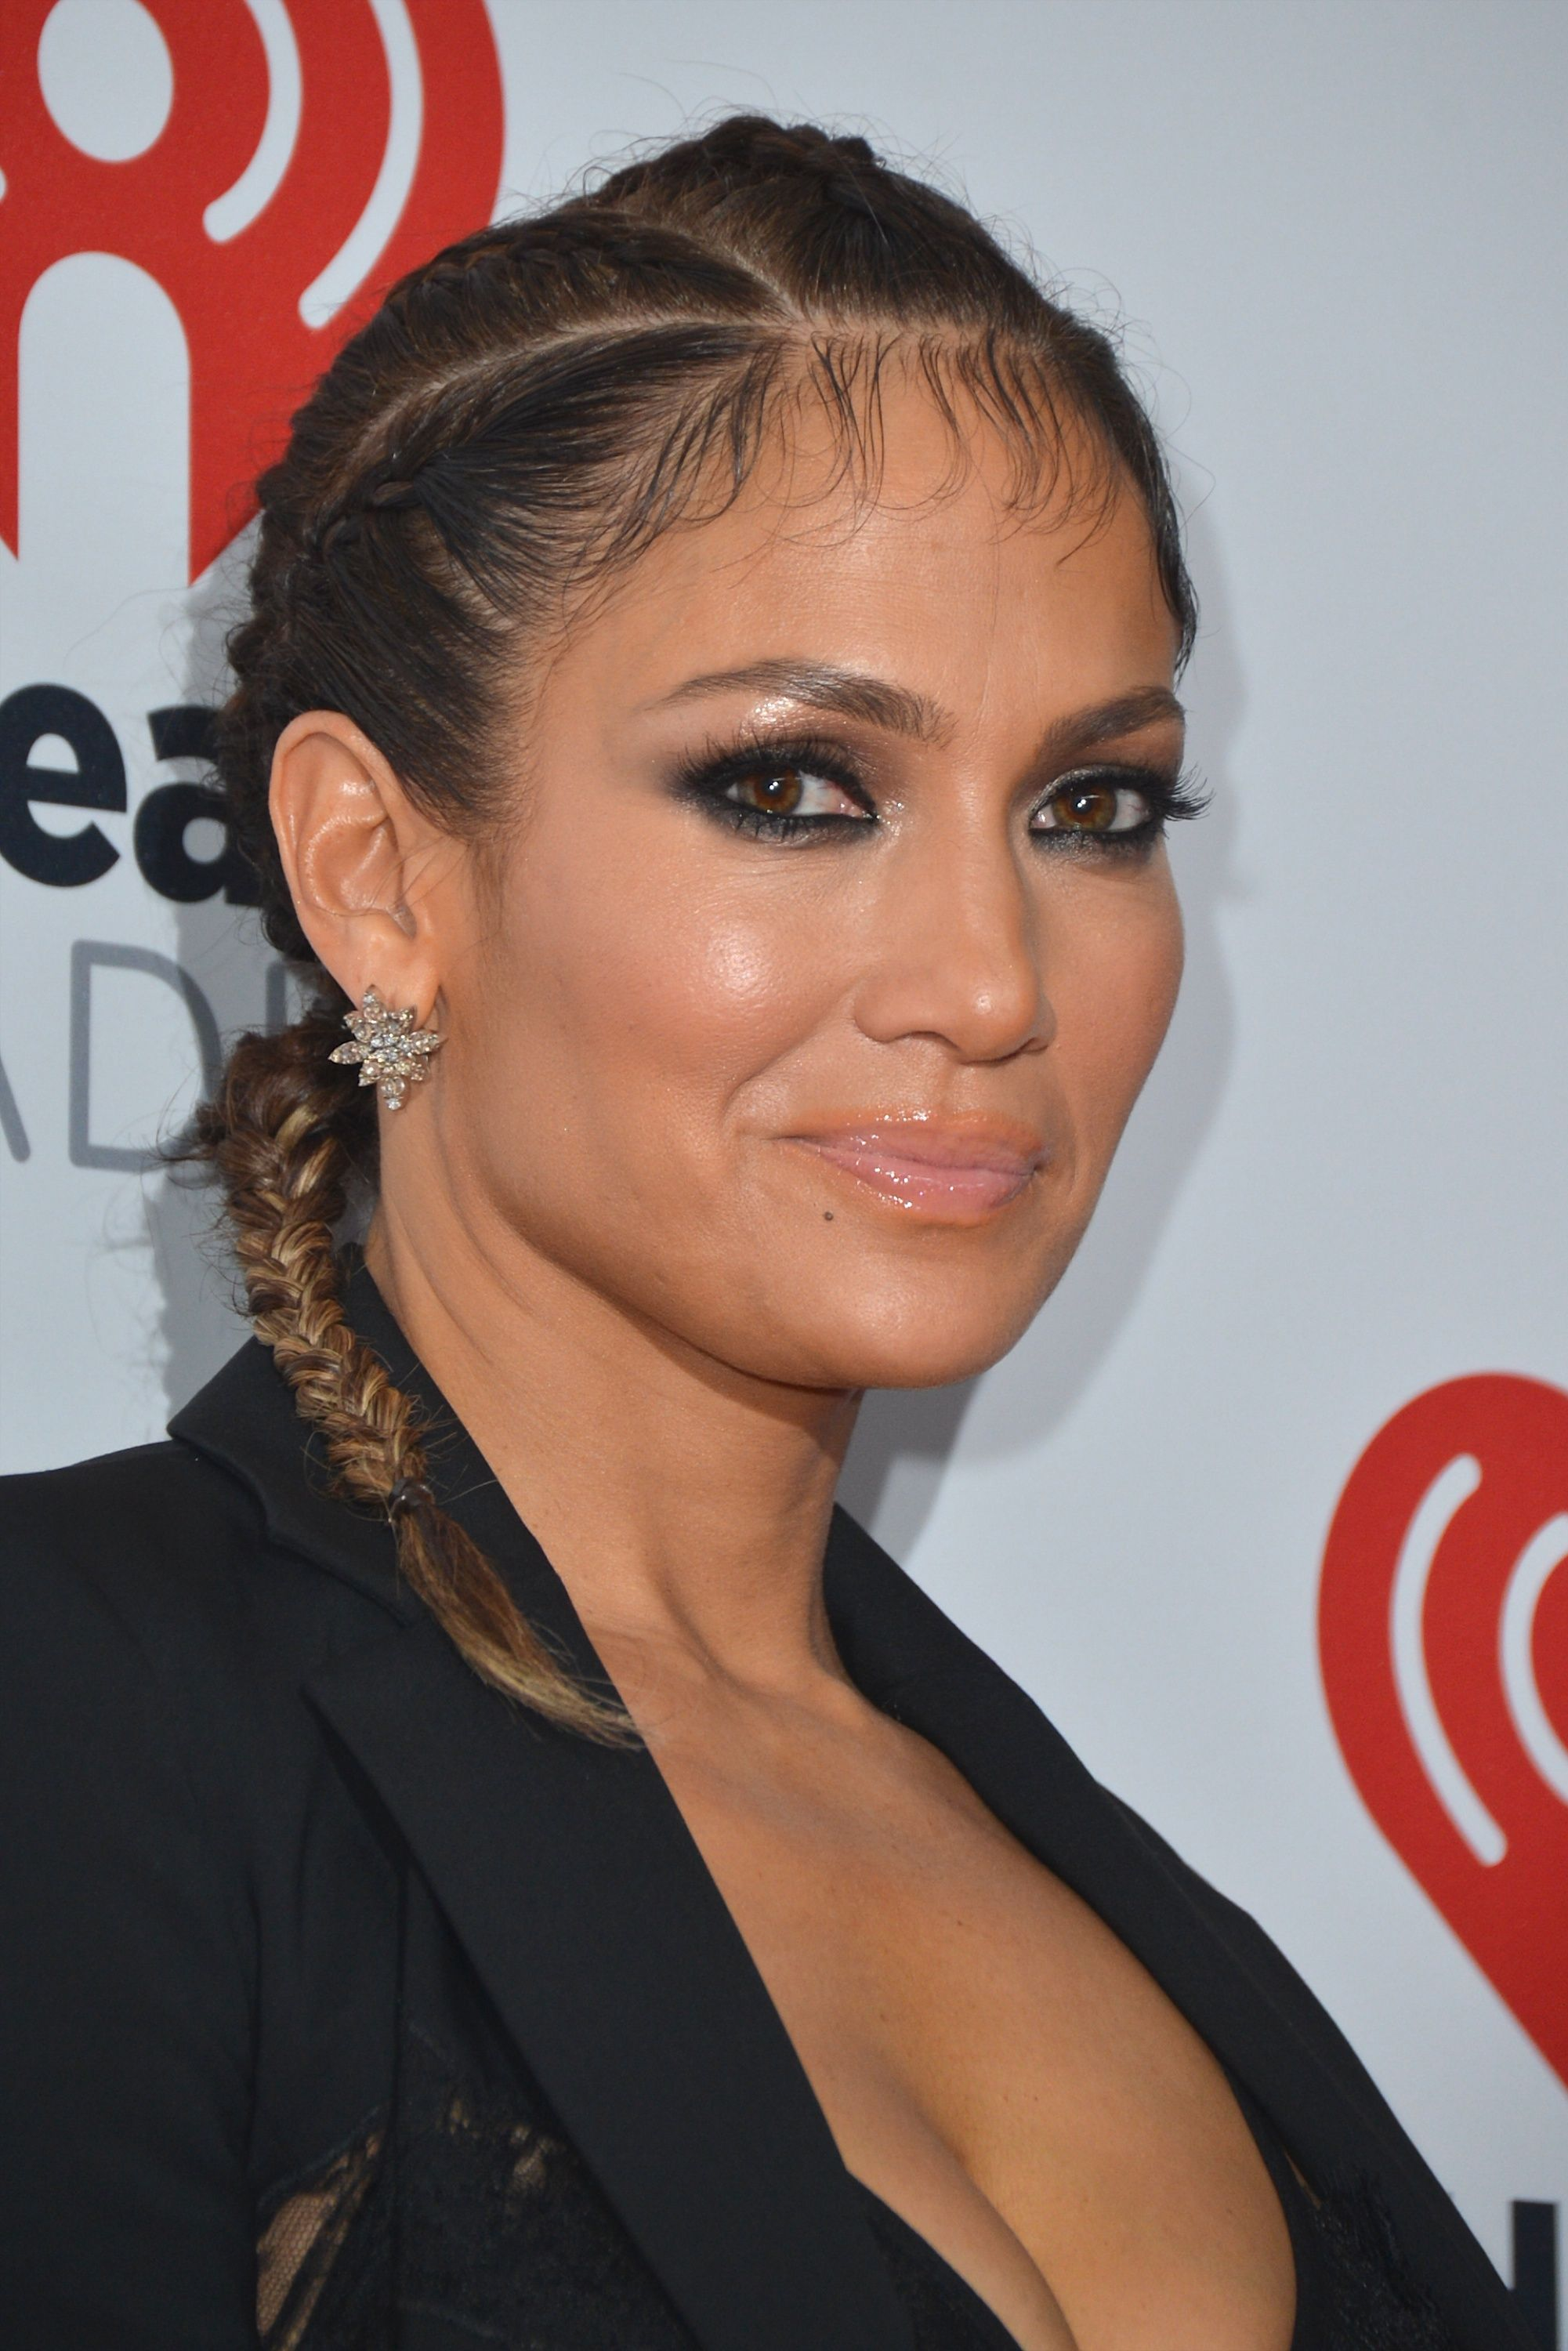 Jennifer Lopez at 2015 iHeartRadio Music Festival